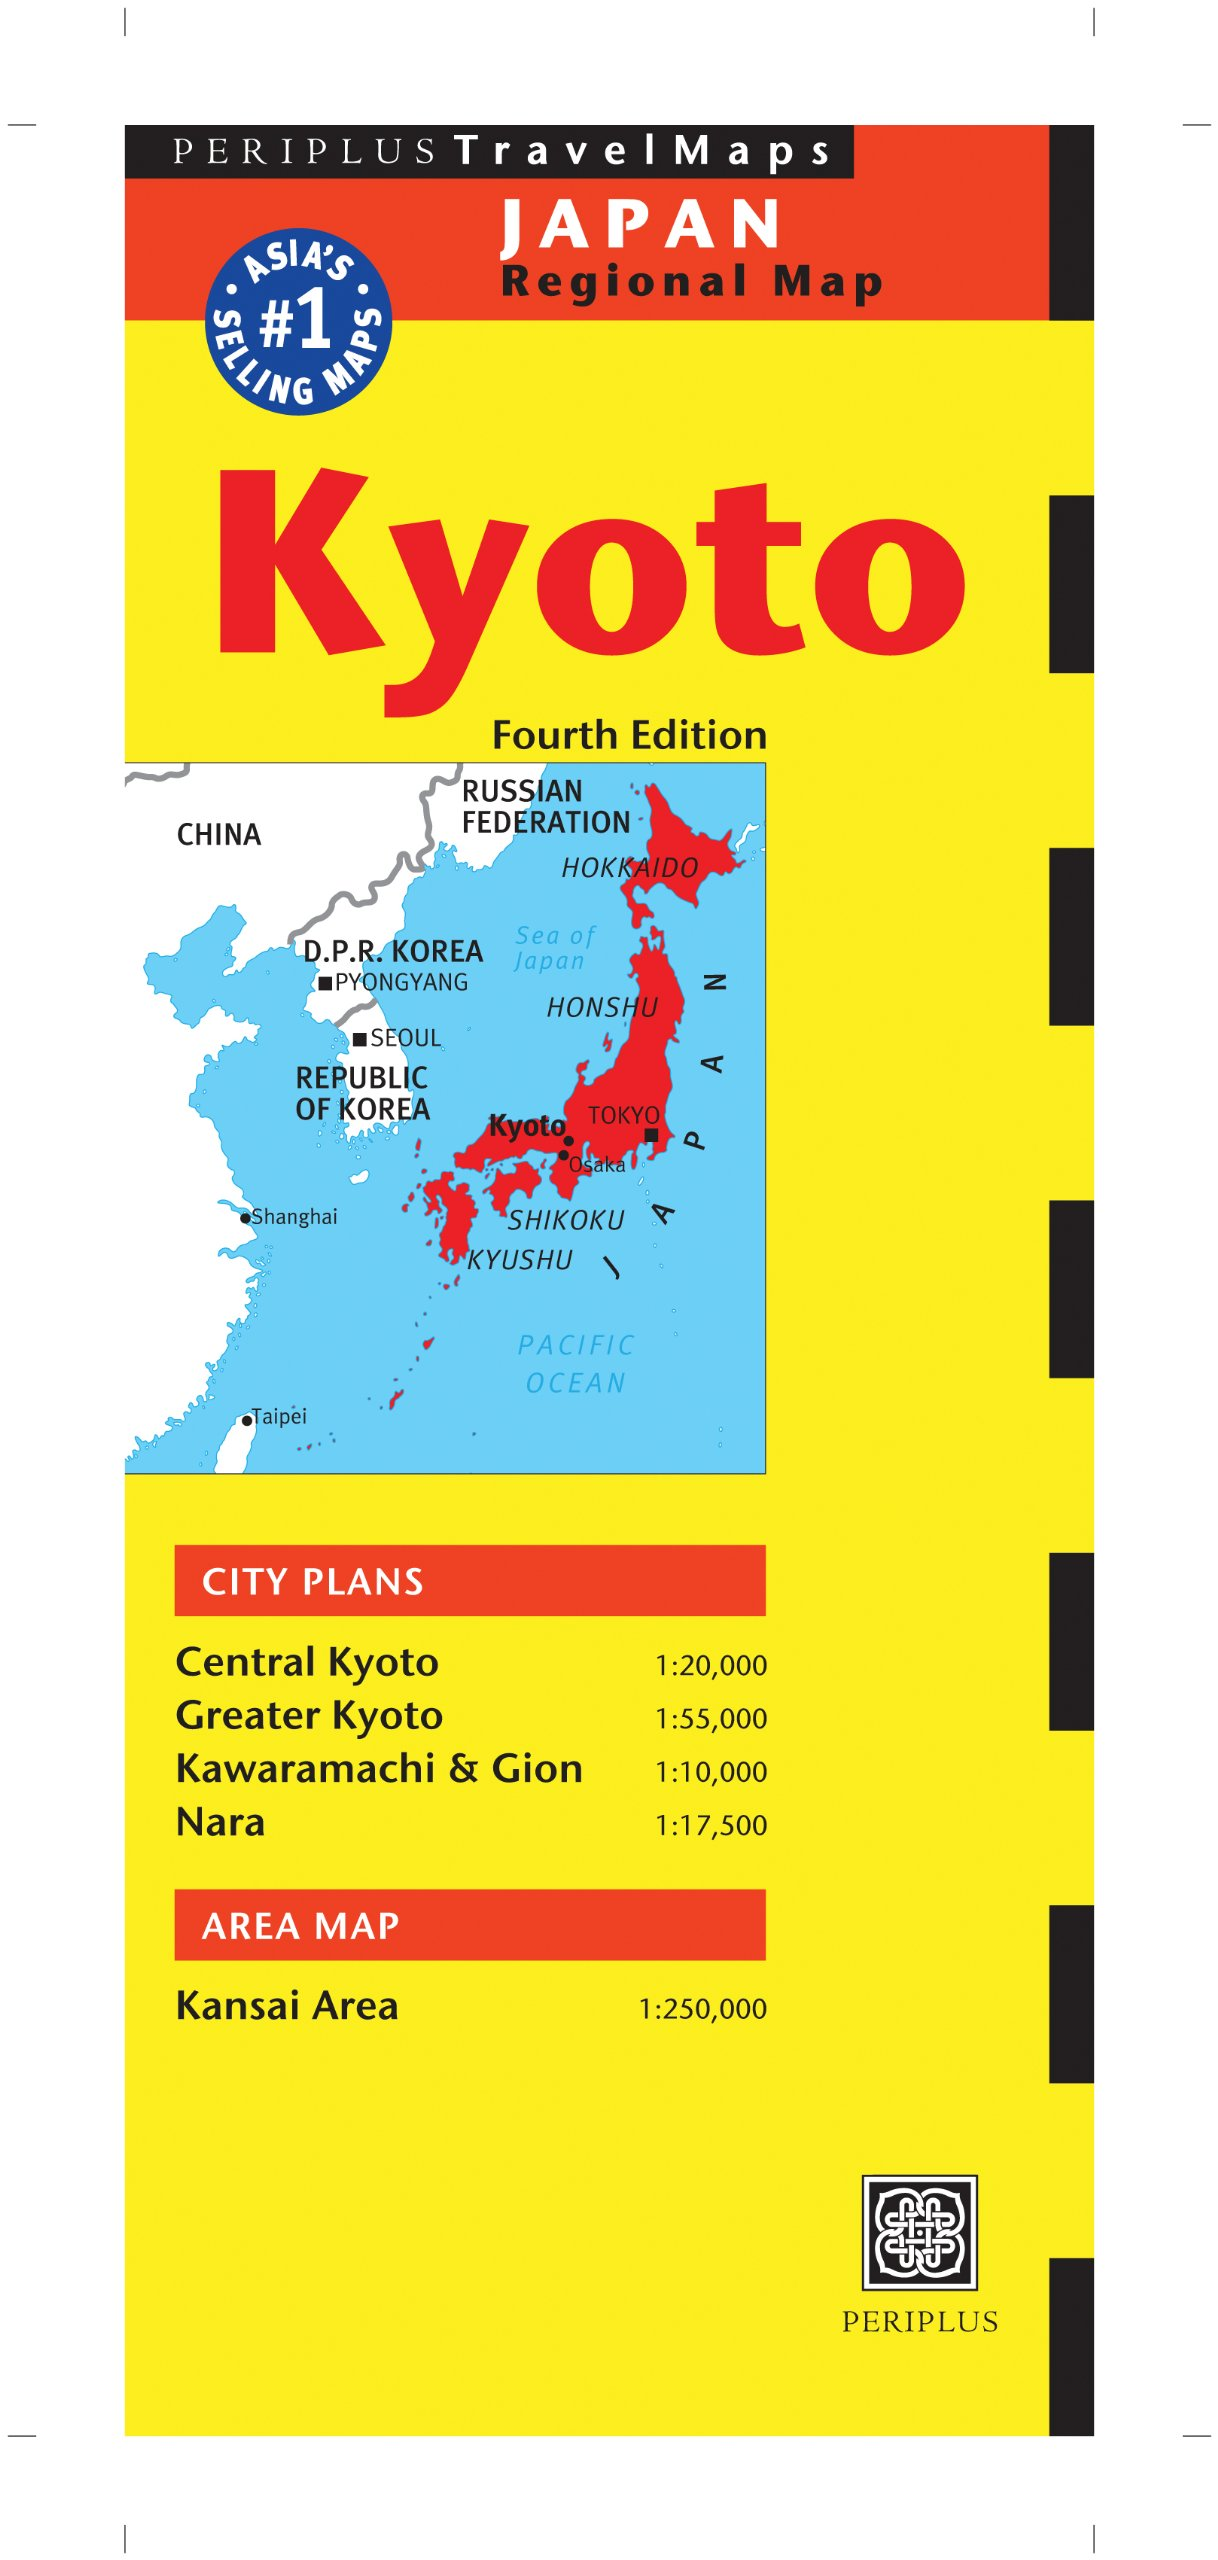 Kyoto Travel Map Fourth Edition (Periplus Travel Maps)